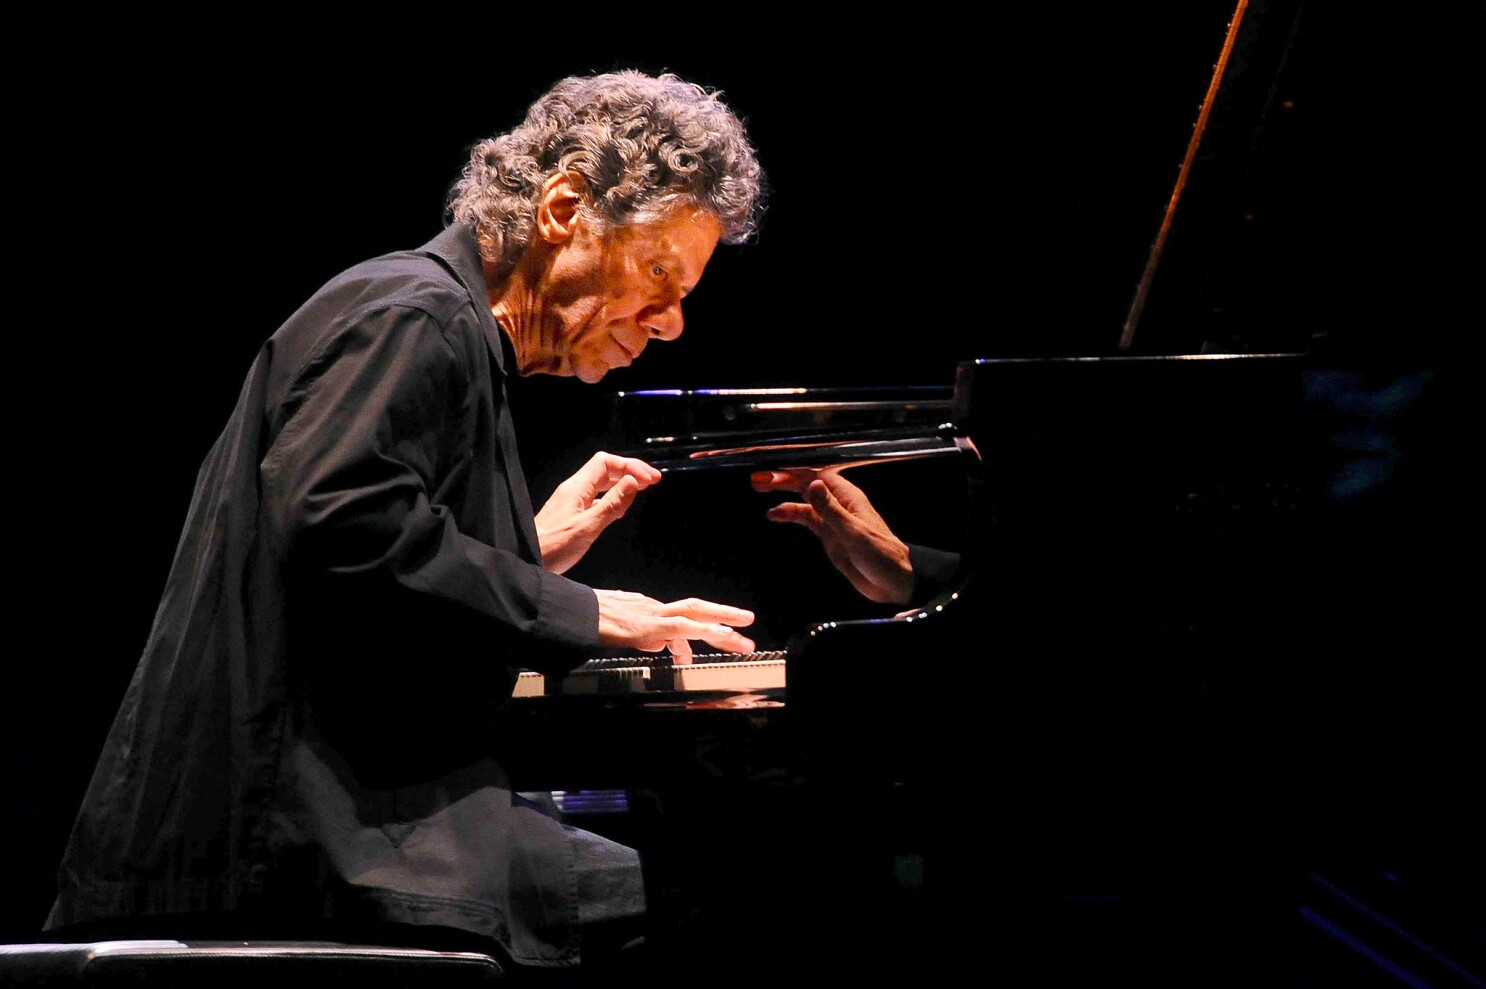 Best Jazz Albums 2021 Best jazz albums of 2019: Chick Corea, Mark Dresser Seven, Steph